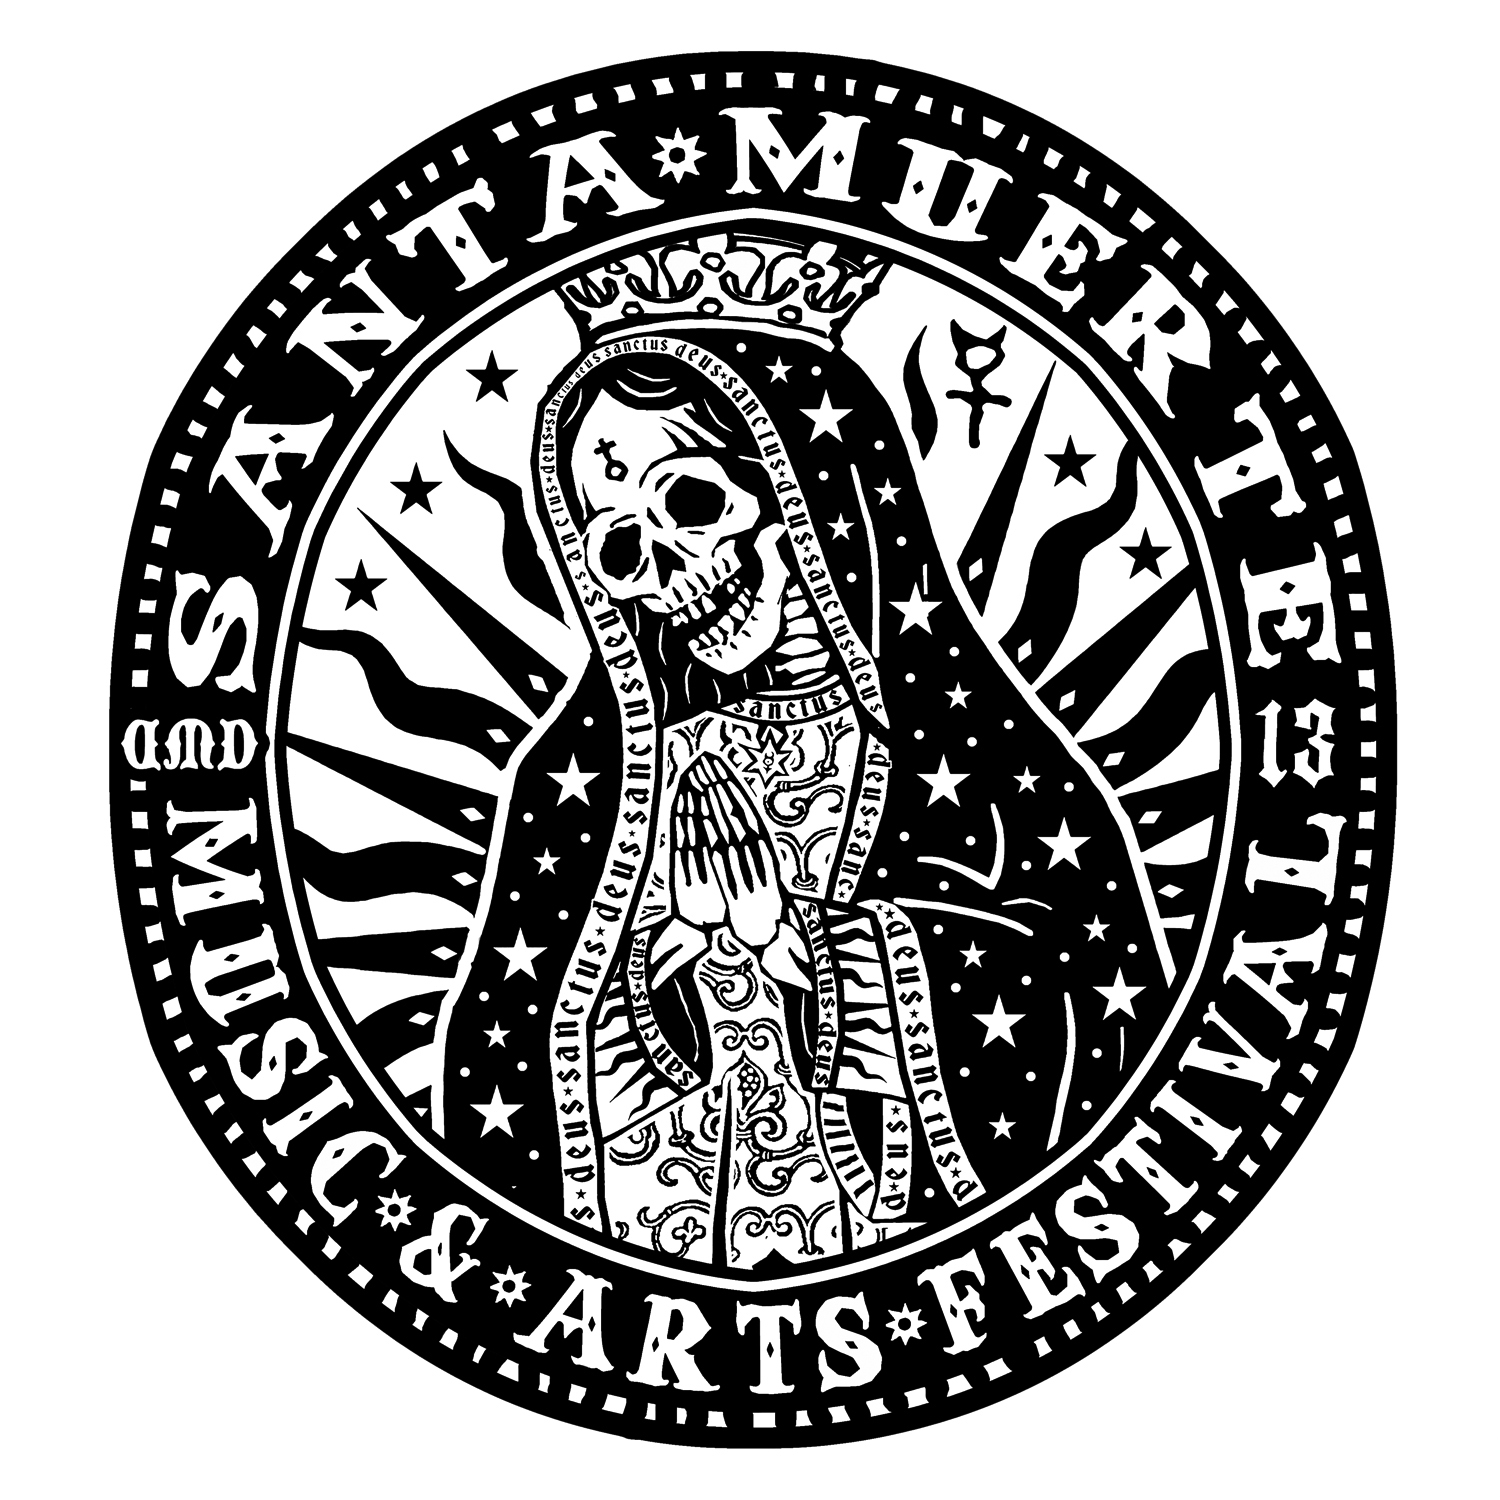 la nina de muchas caras u2013 the many faces of santa muerte u2013 most